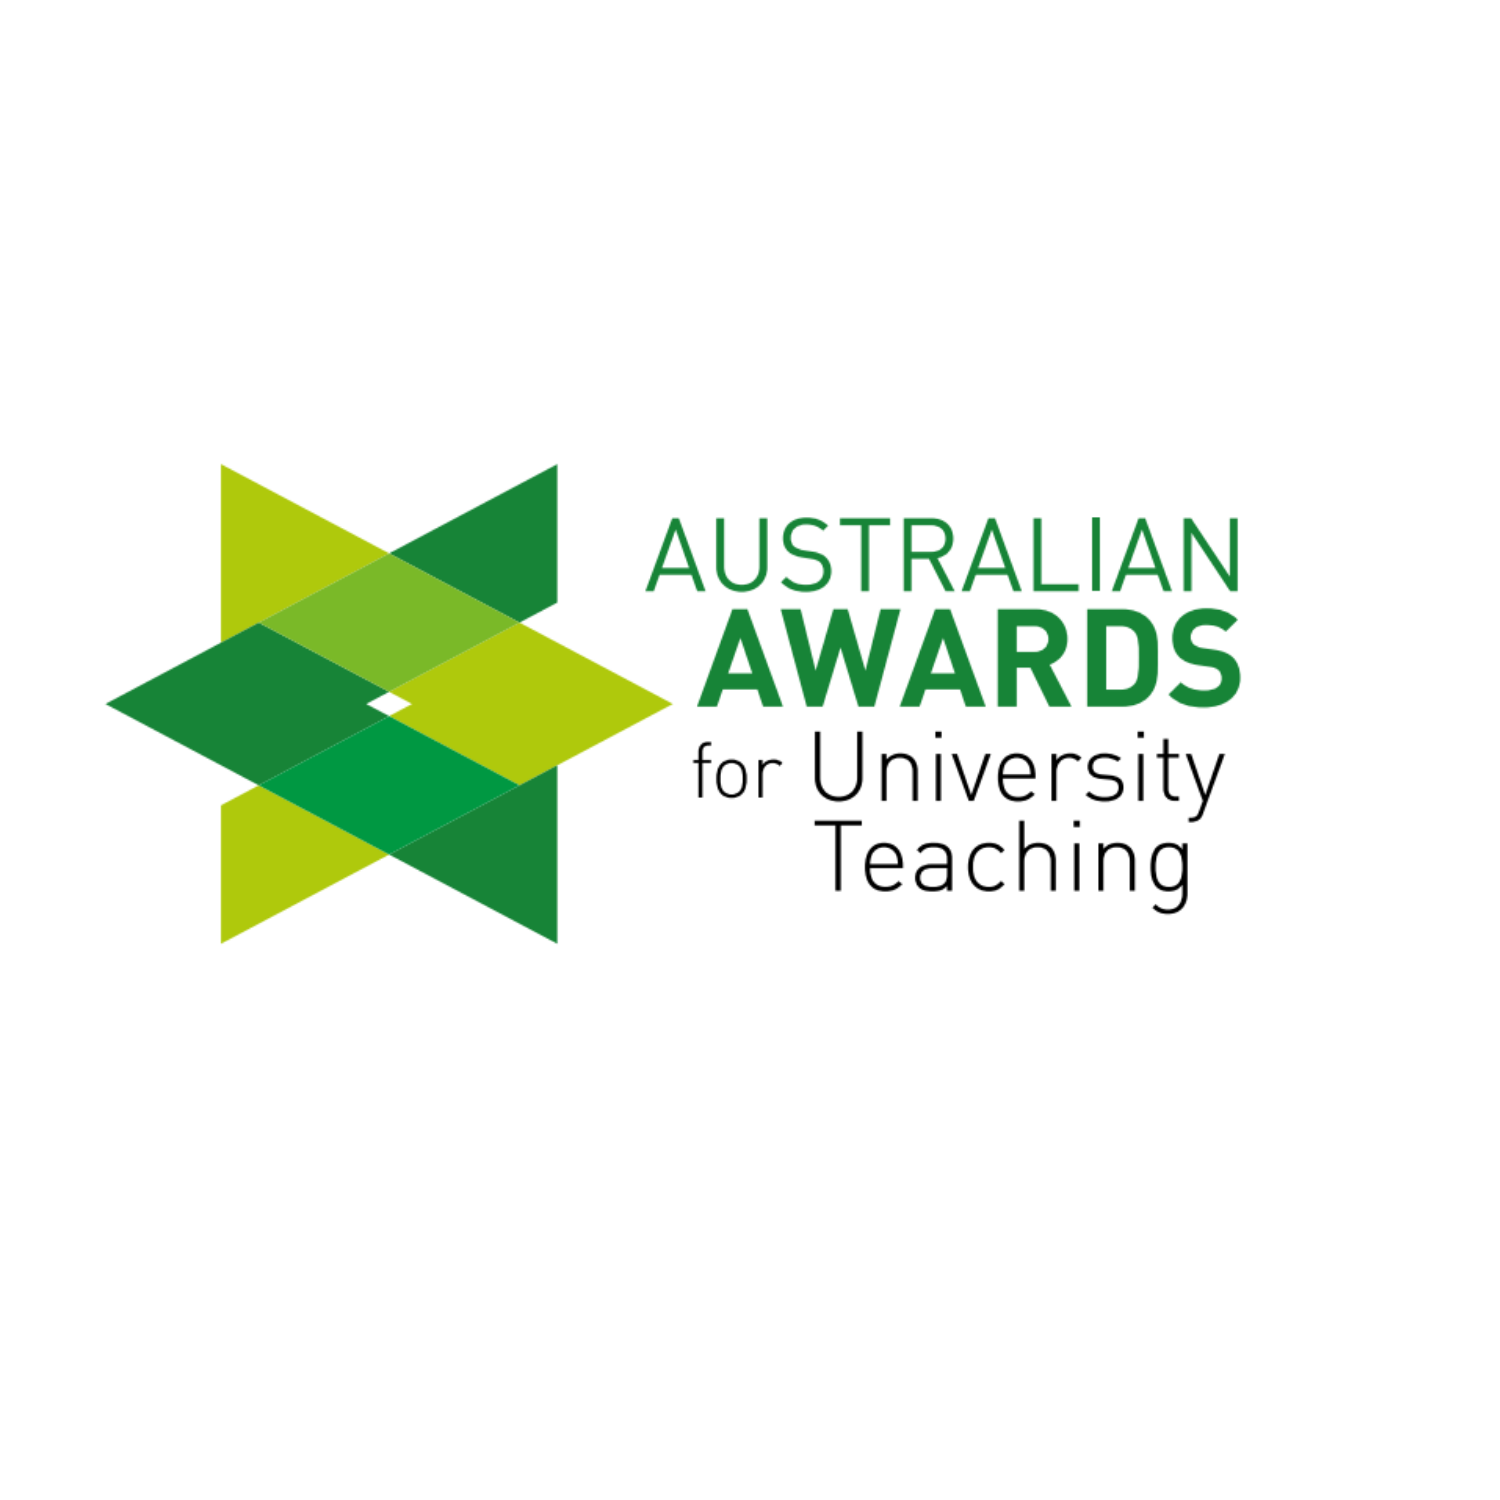 Australian Awards for University Teaching